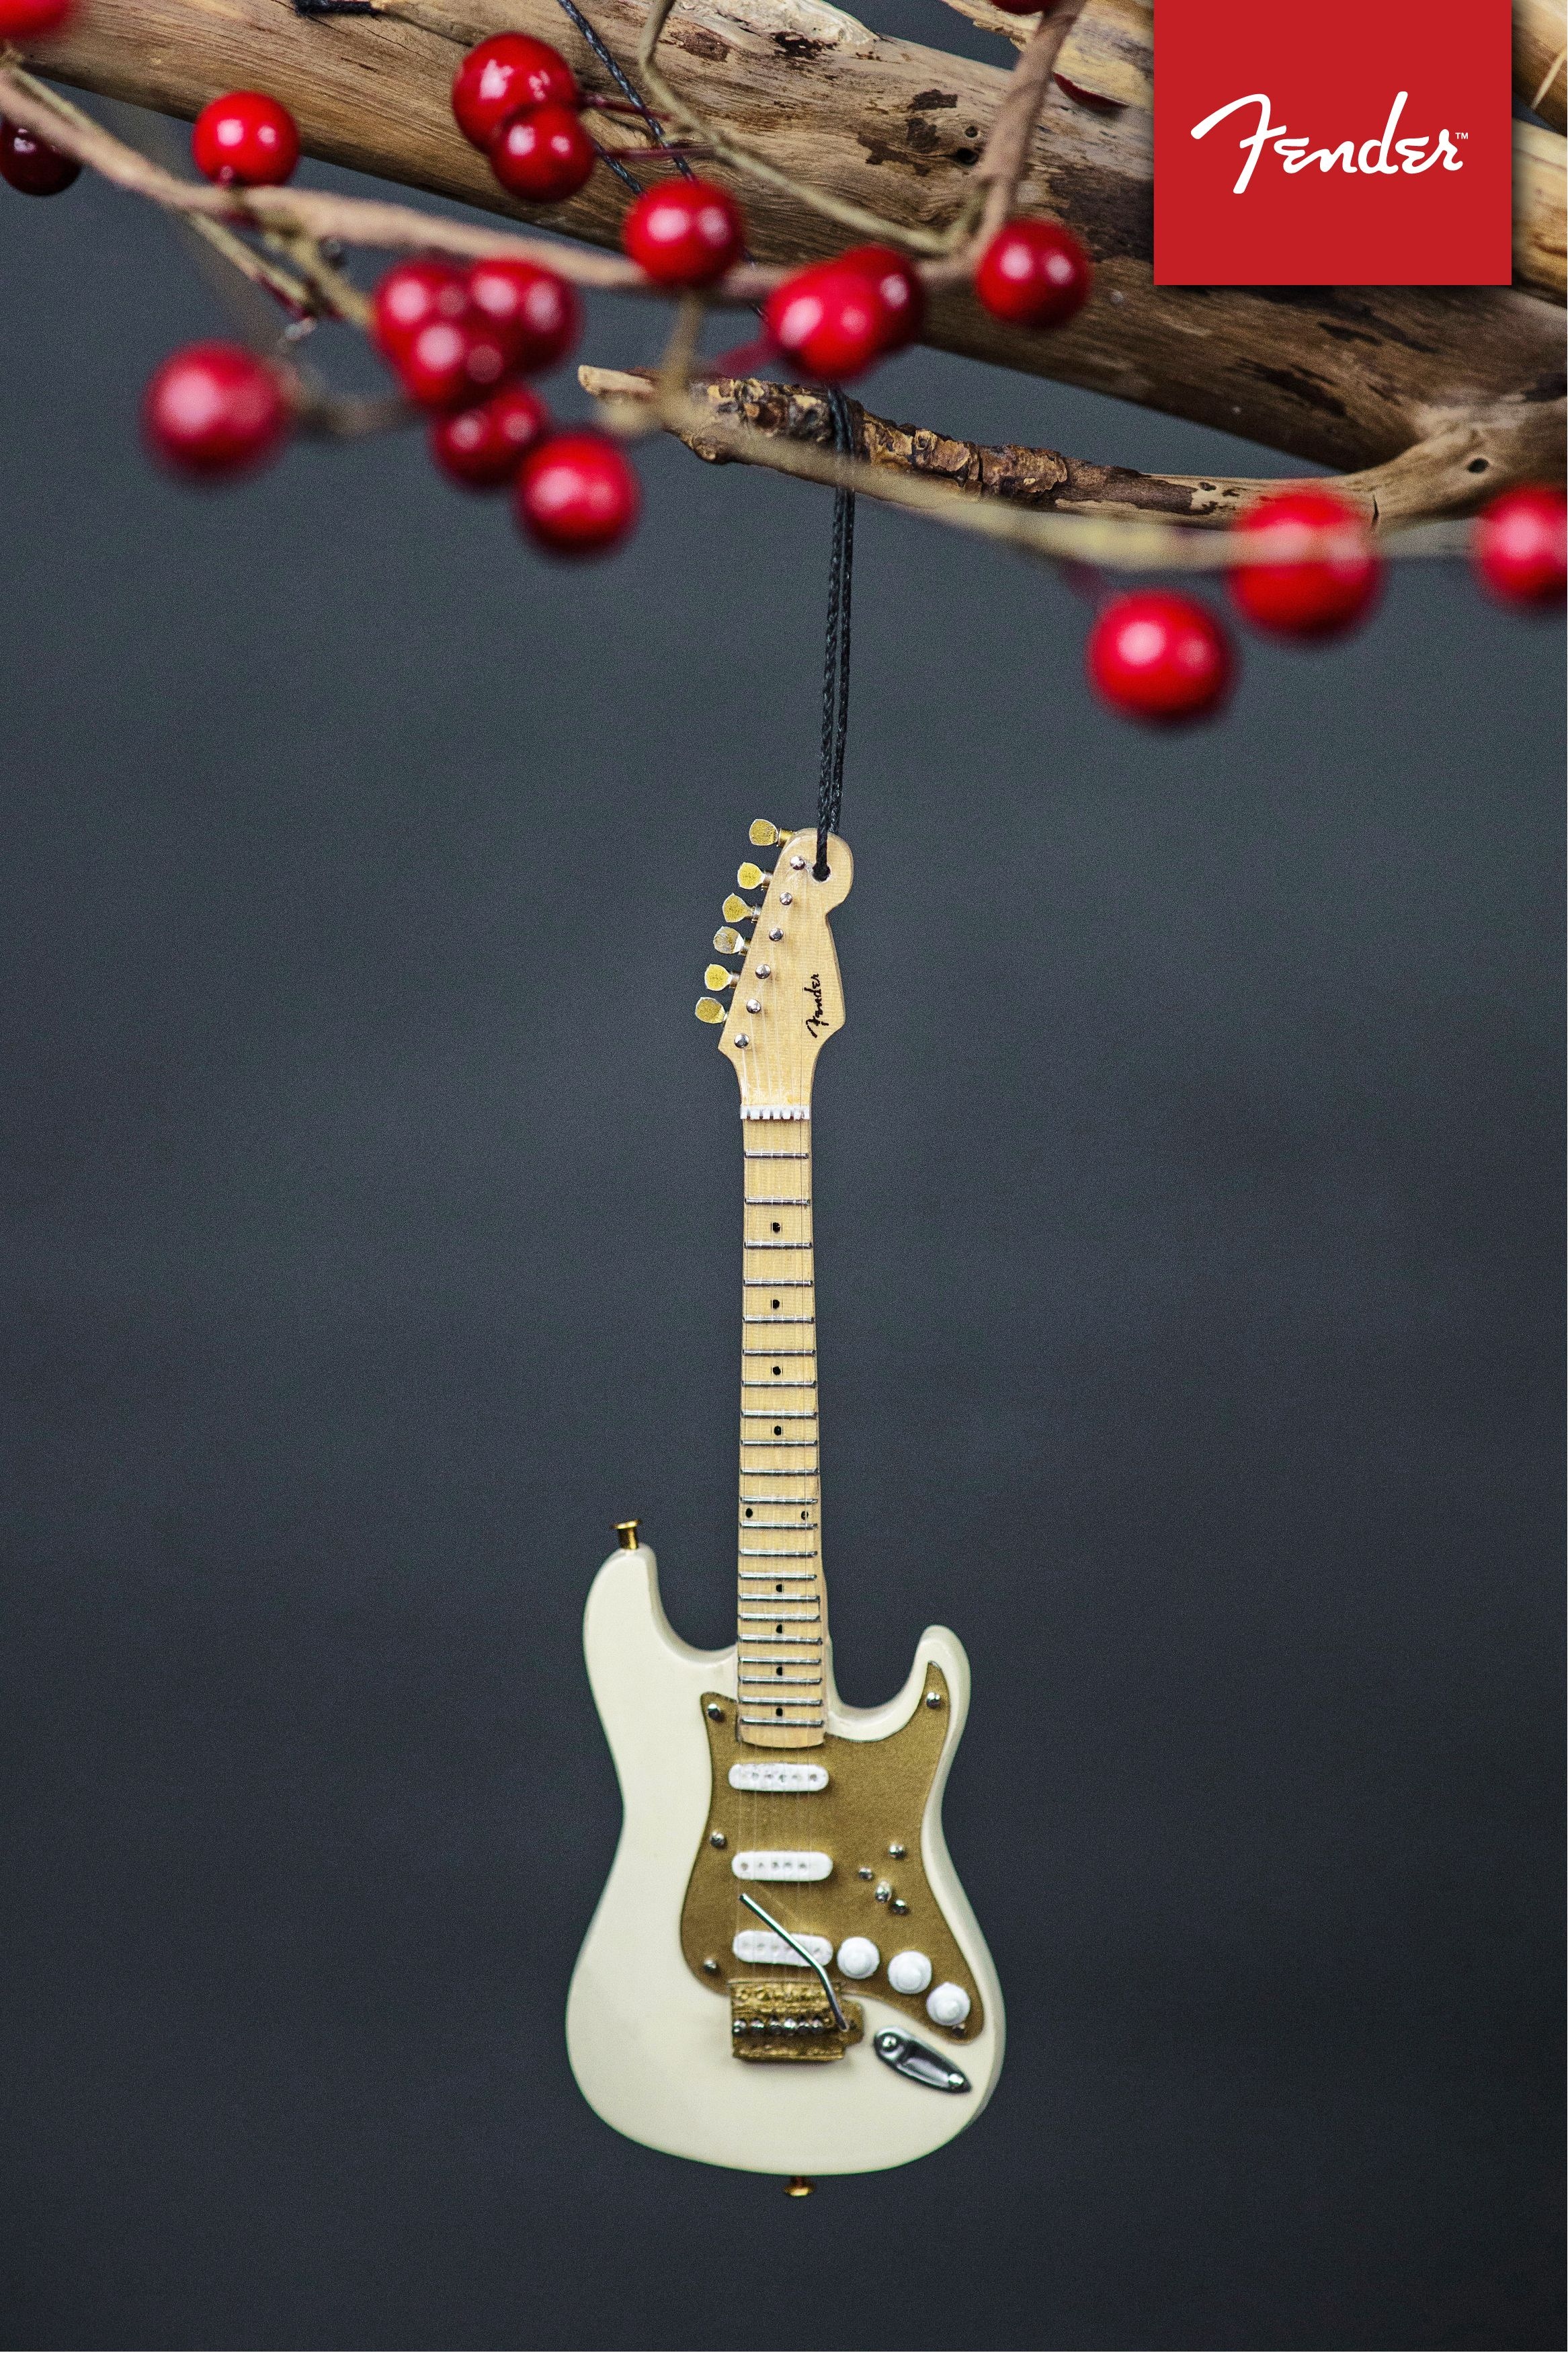 6 FENDER 50s Stratocaster Guitar Holiday Ornament  Cream